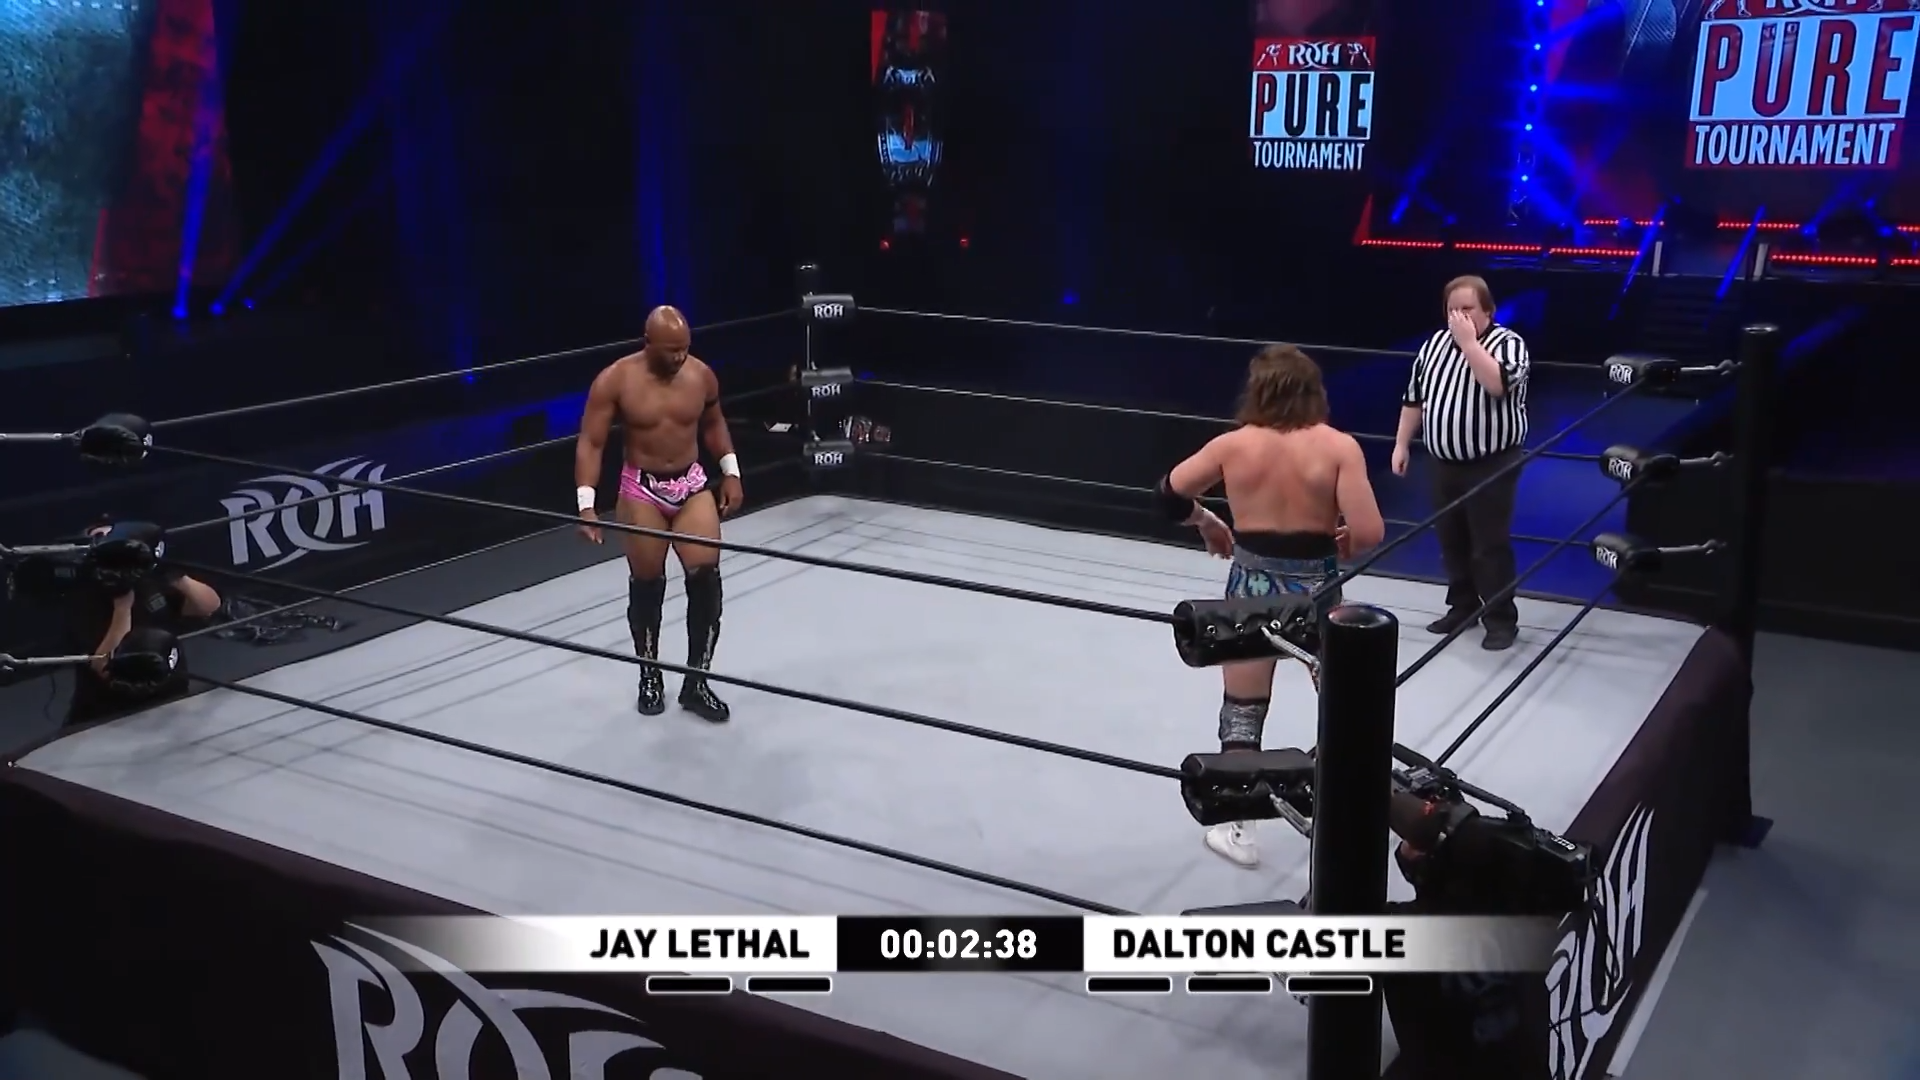 Jay Lethal and Dalton castle square off for Ring of Honor